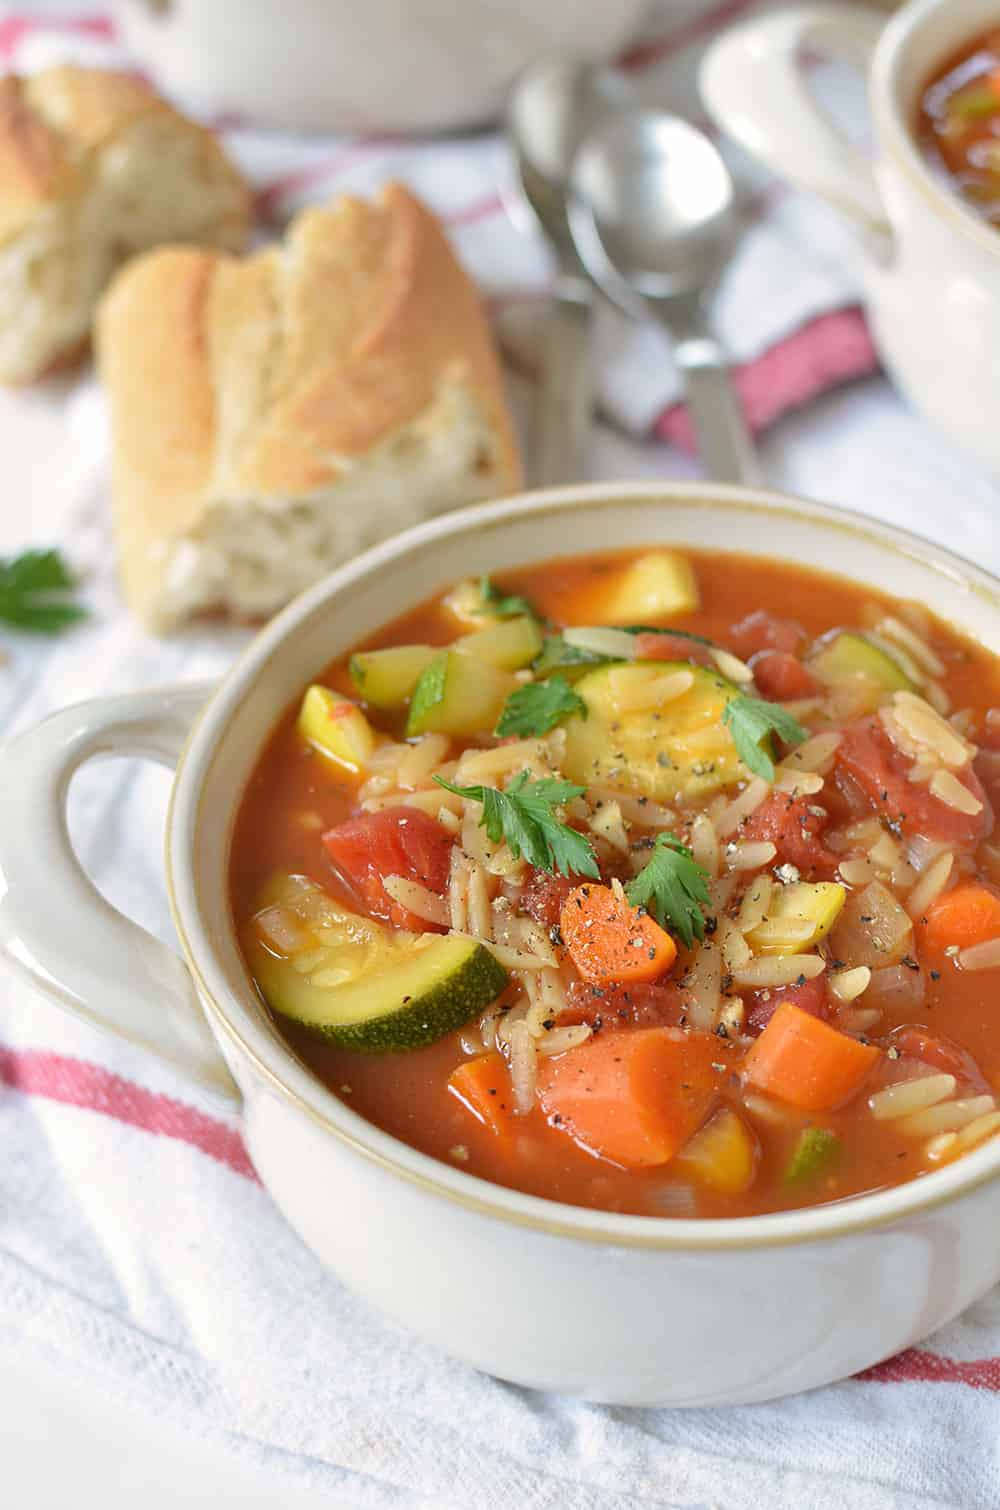 Italian Orzo Soup! Packed with vegetables, this is healthy comfort food at it's finest! Less than 250 calories per serving, a must make! | www.delishknowledge.com